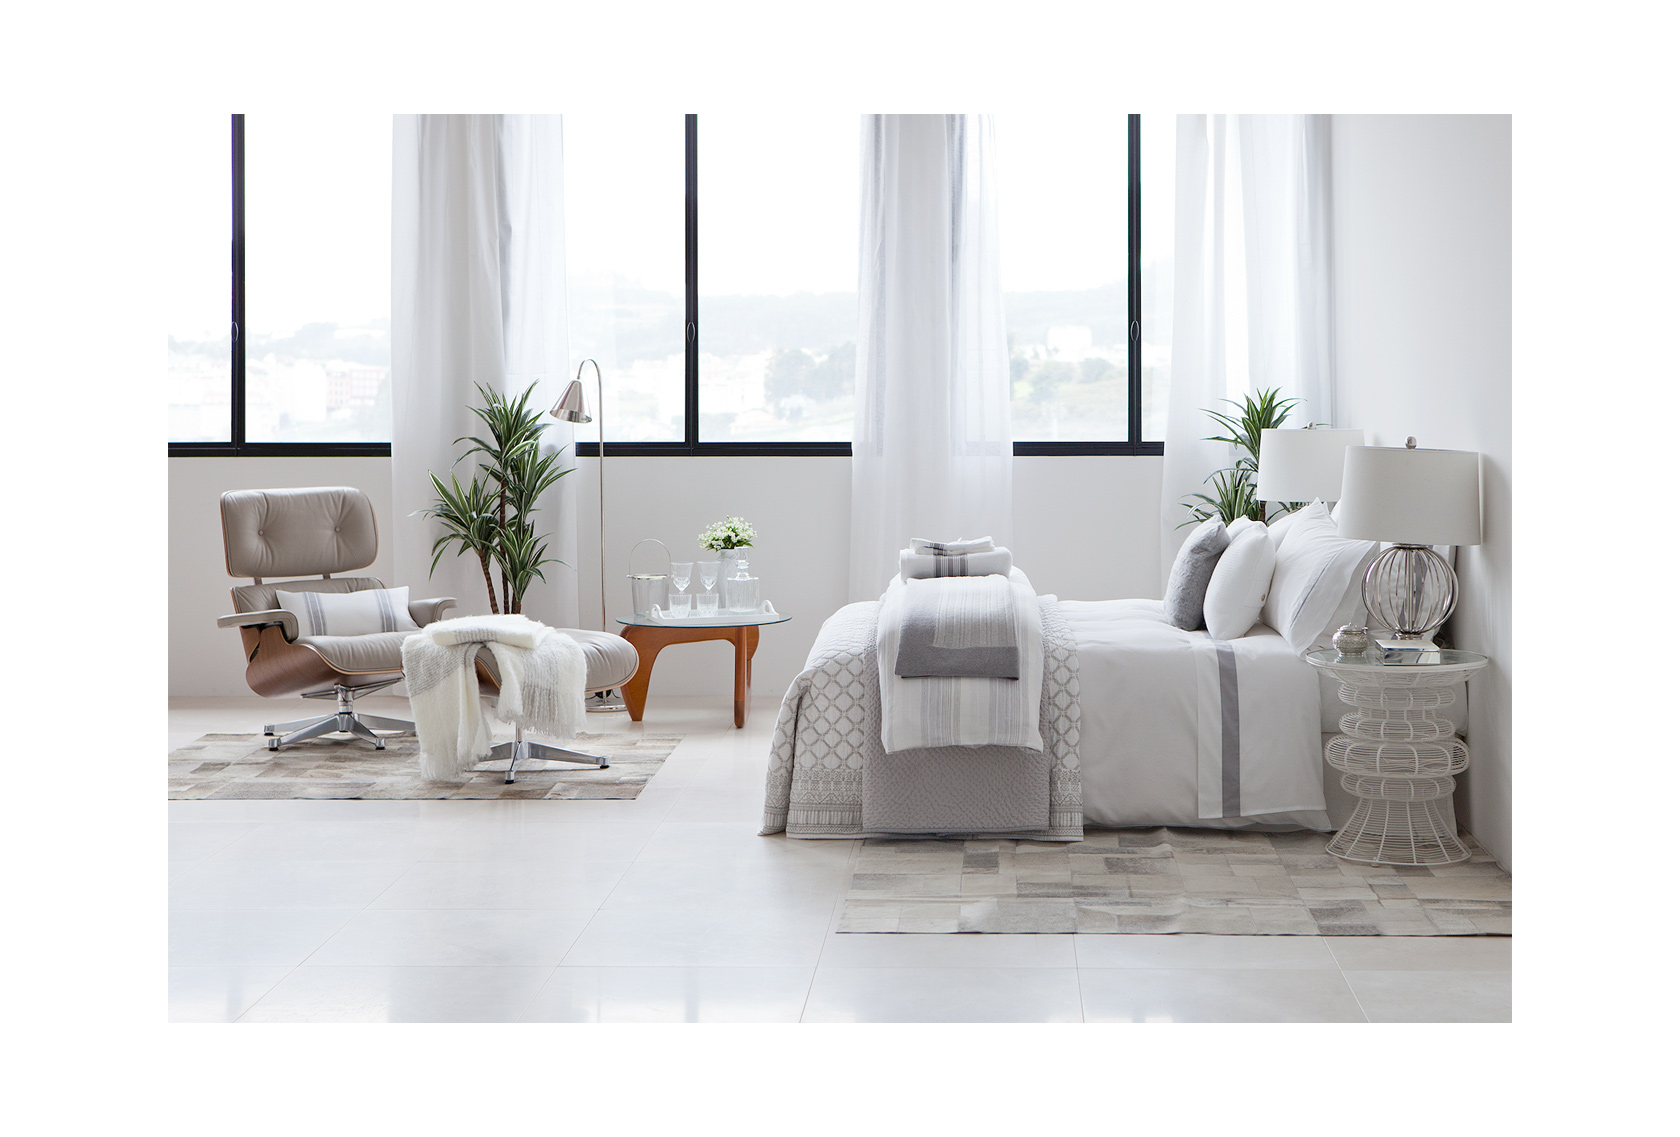 zara home lookbook inspiration a living diary. Black Bedroom Furniture Sets. Home Design Ideas